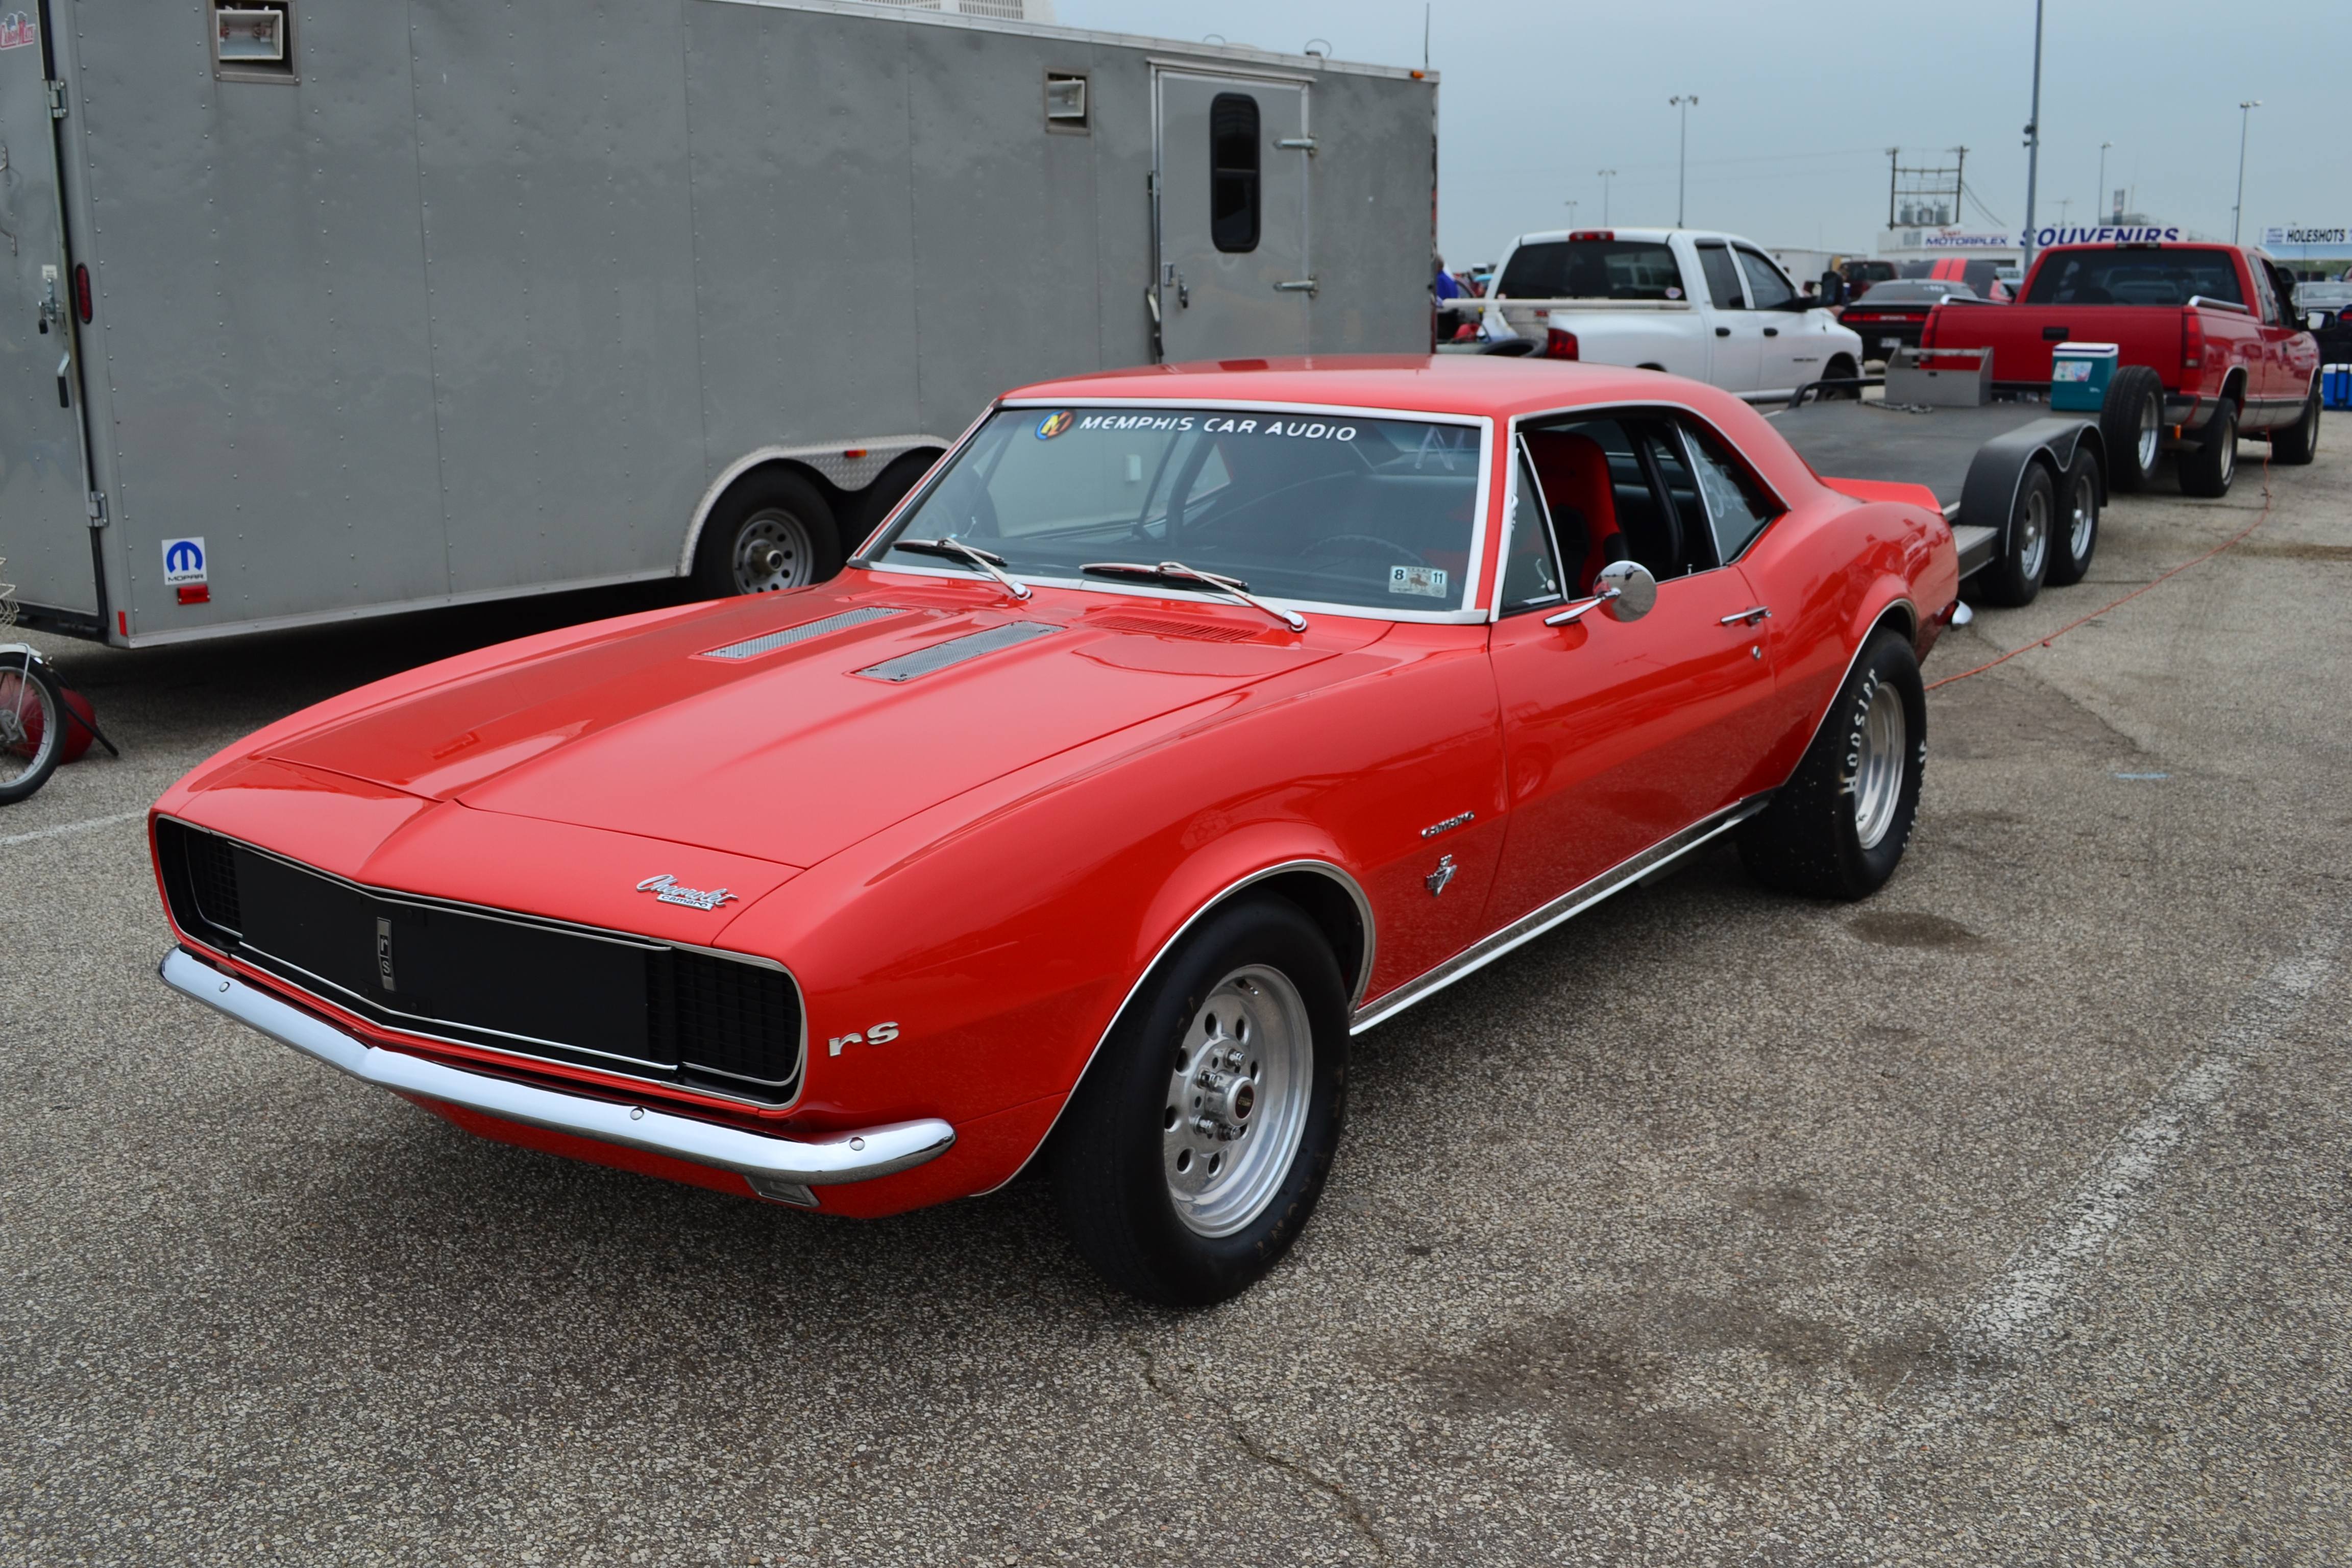 1969 Chevrolet Camaro RS Images   Pictures and Videos